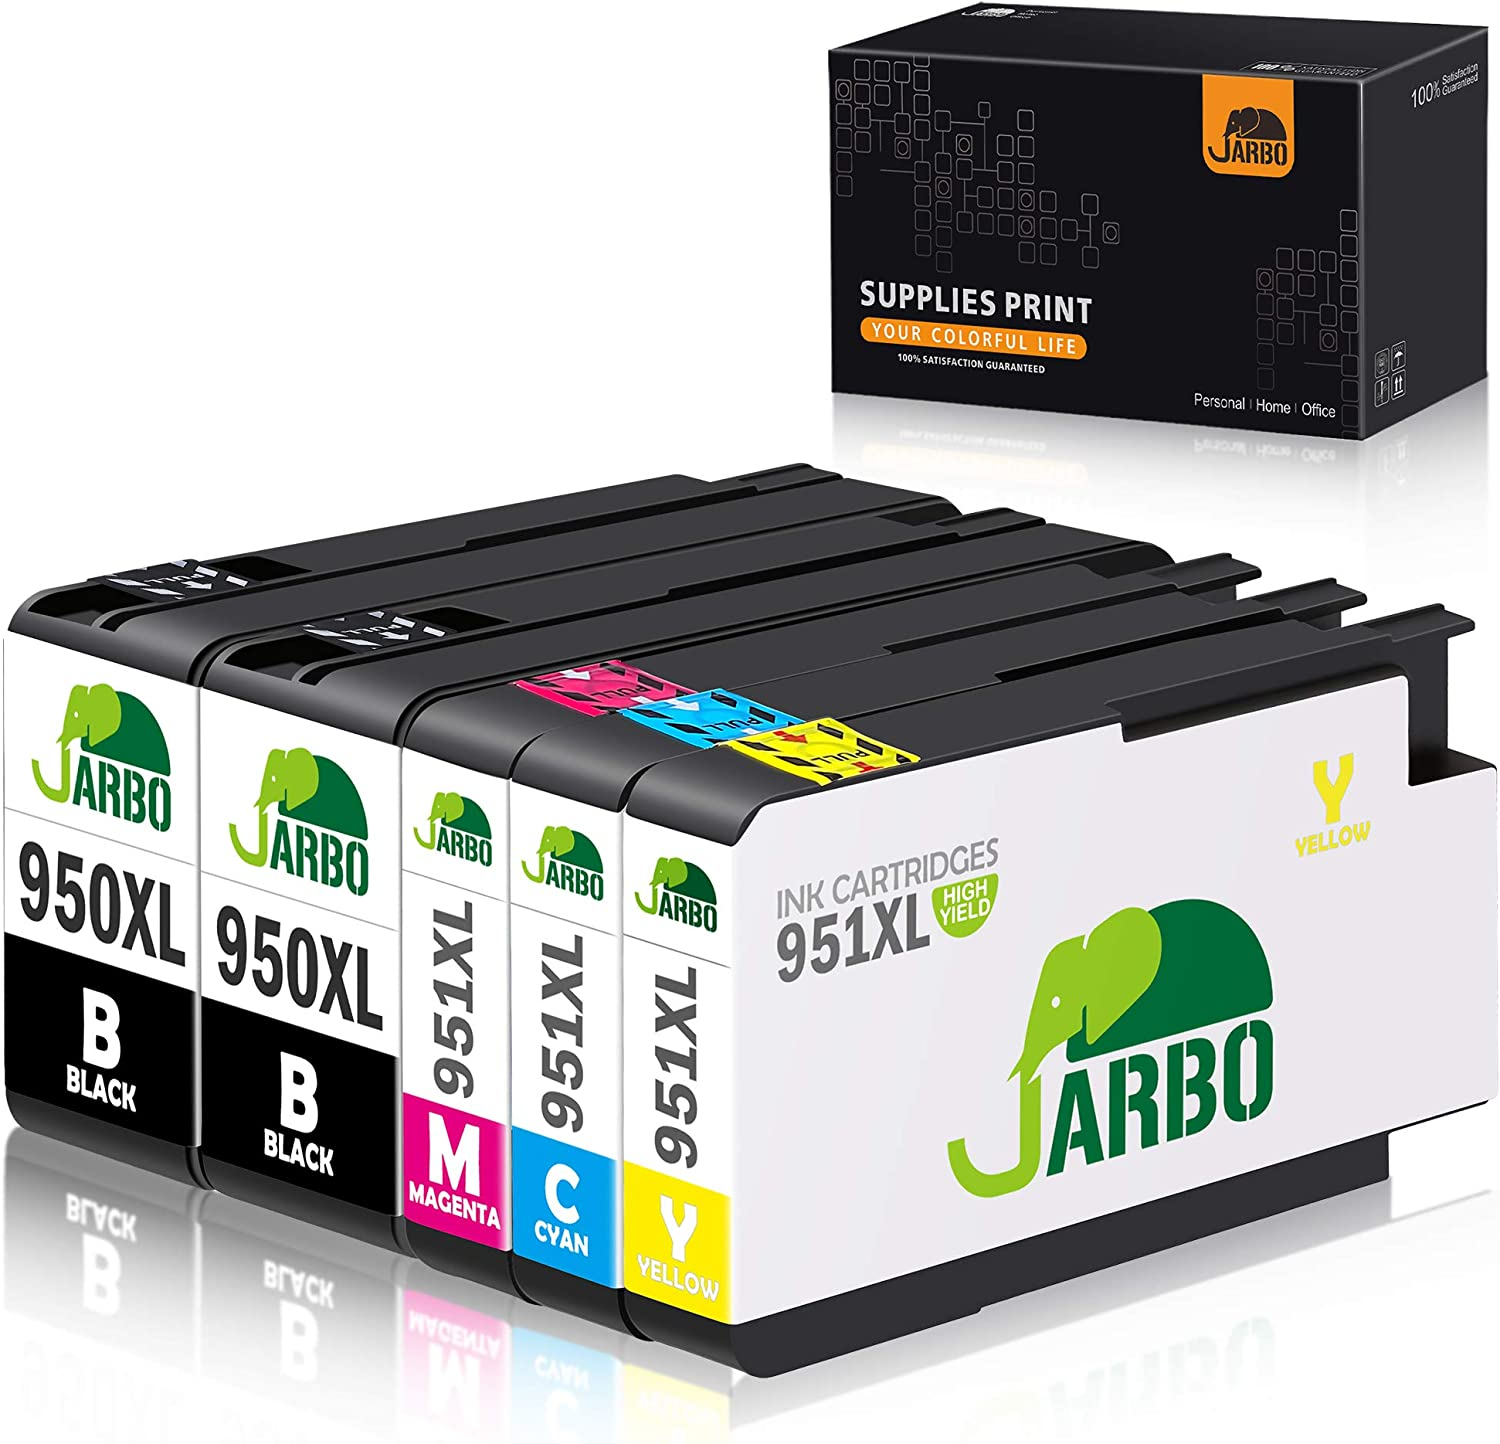 JARBO Compatible Ink Cartridge Replacement for HP 950XL 951XL, 1 Set+1 Black, Compatible with HP Officejet PRO 8600 8610 8620 8630 8100 8640 8660 8615 8625 251dw 271dw 276DW Printer